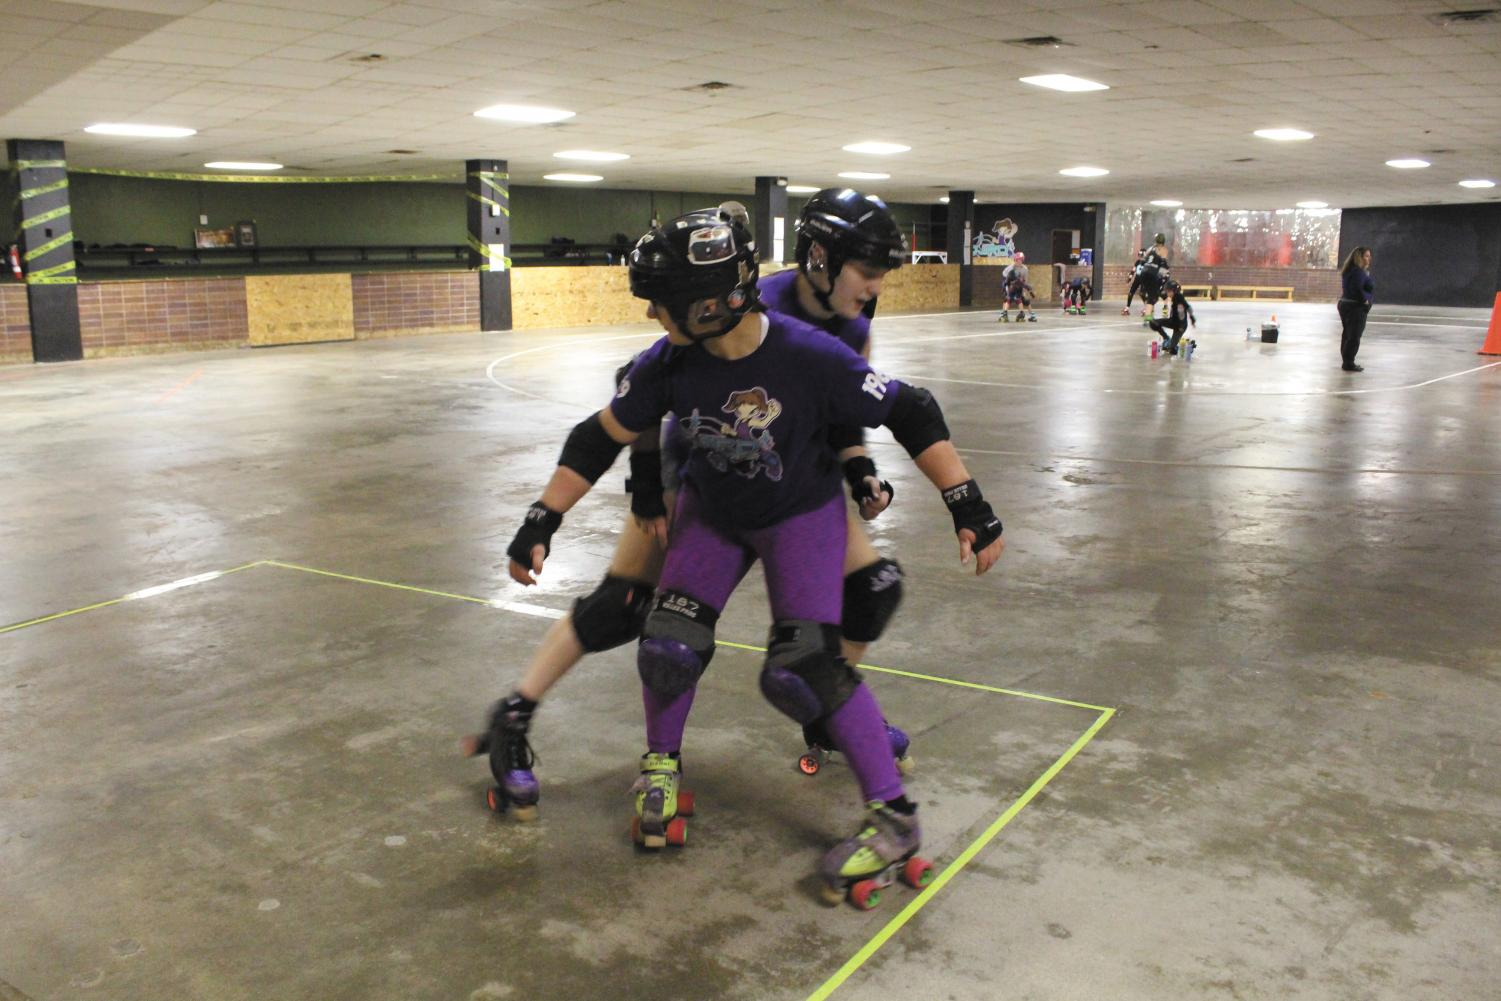 """Freshman Caroline Boucher blocks senior Trinity Hettinger from trying to get around her and score a point. """"I've always loved skating and thought it looked like a great way to take my anger out,"""" Hettinger said. Photo by McKenzie Gandy."""